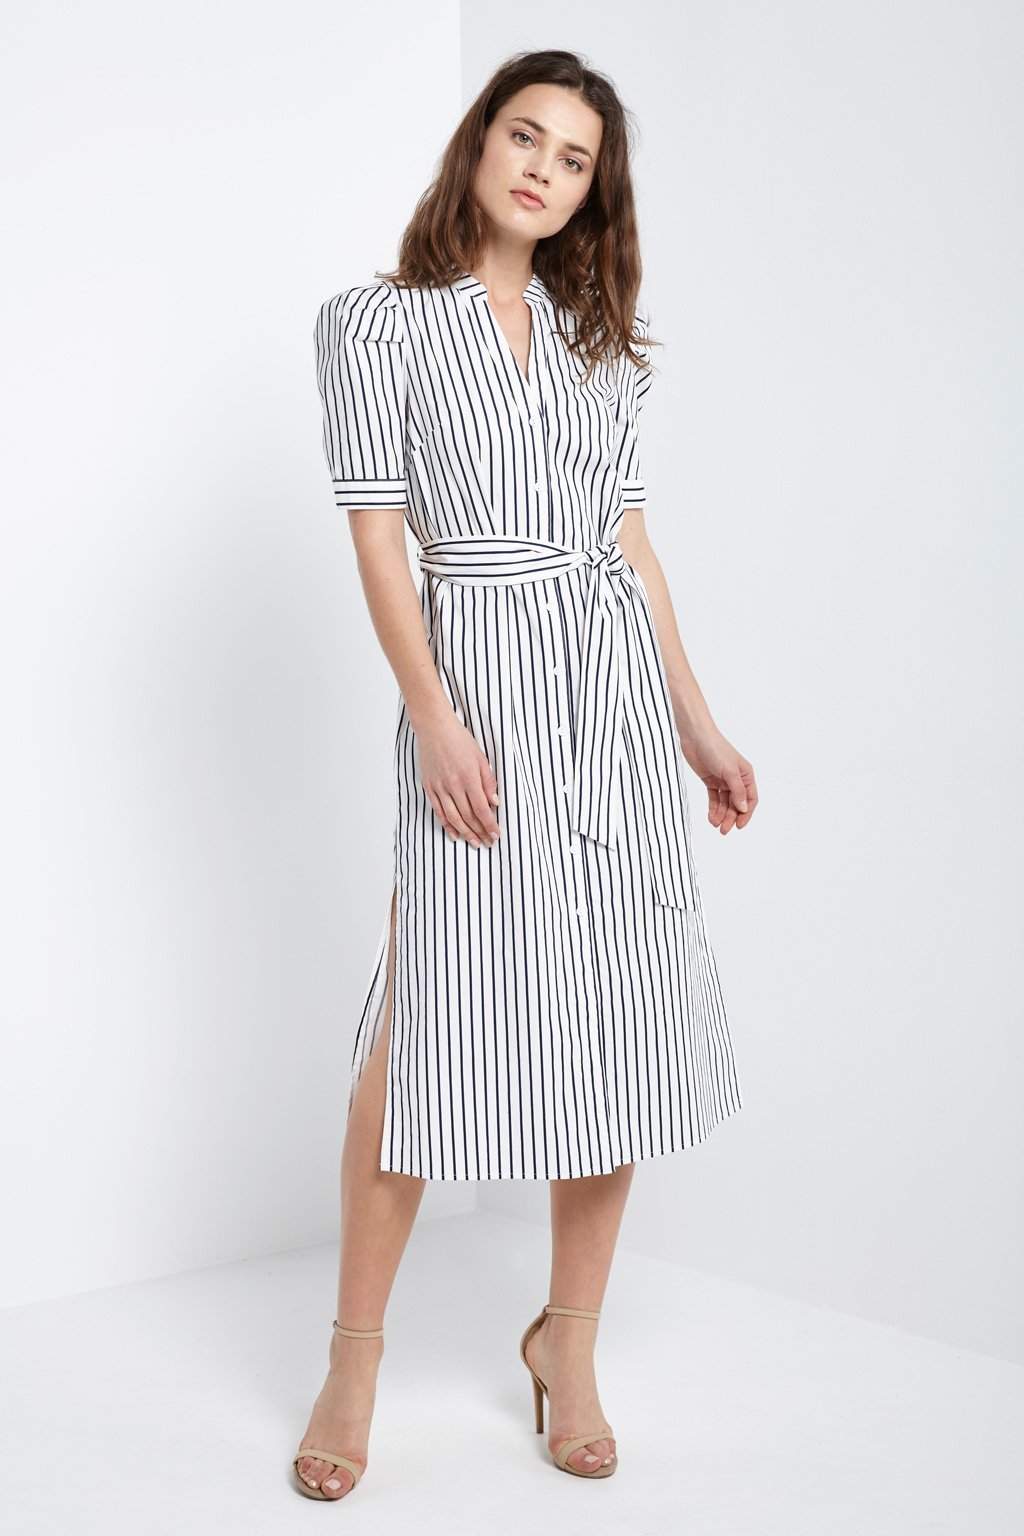 Poshsquare Dress S / White Stripe Button Down Side Slit Dress